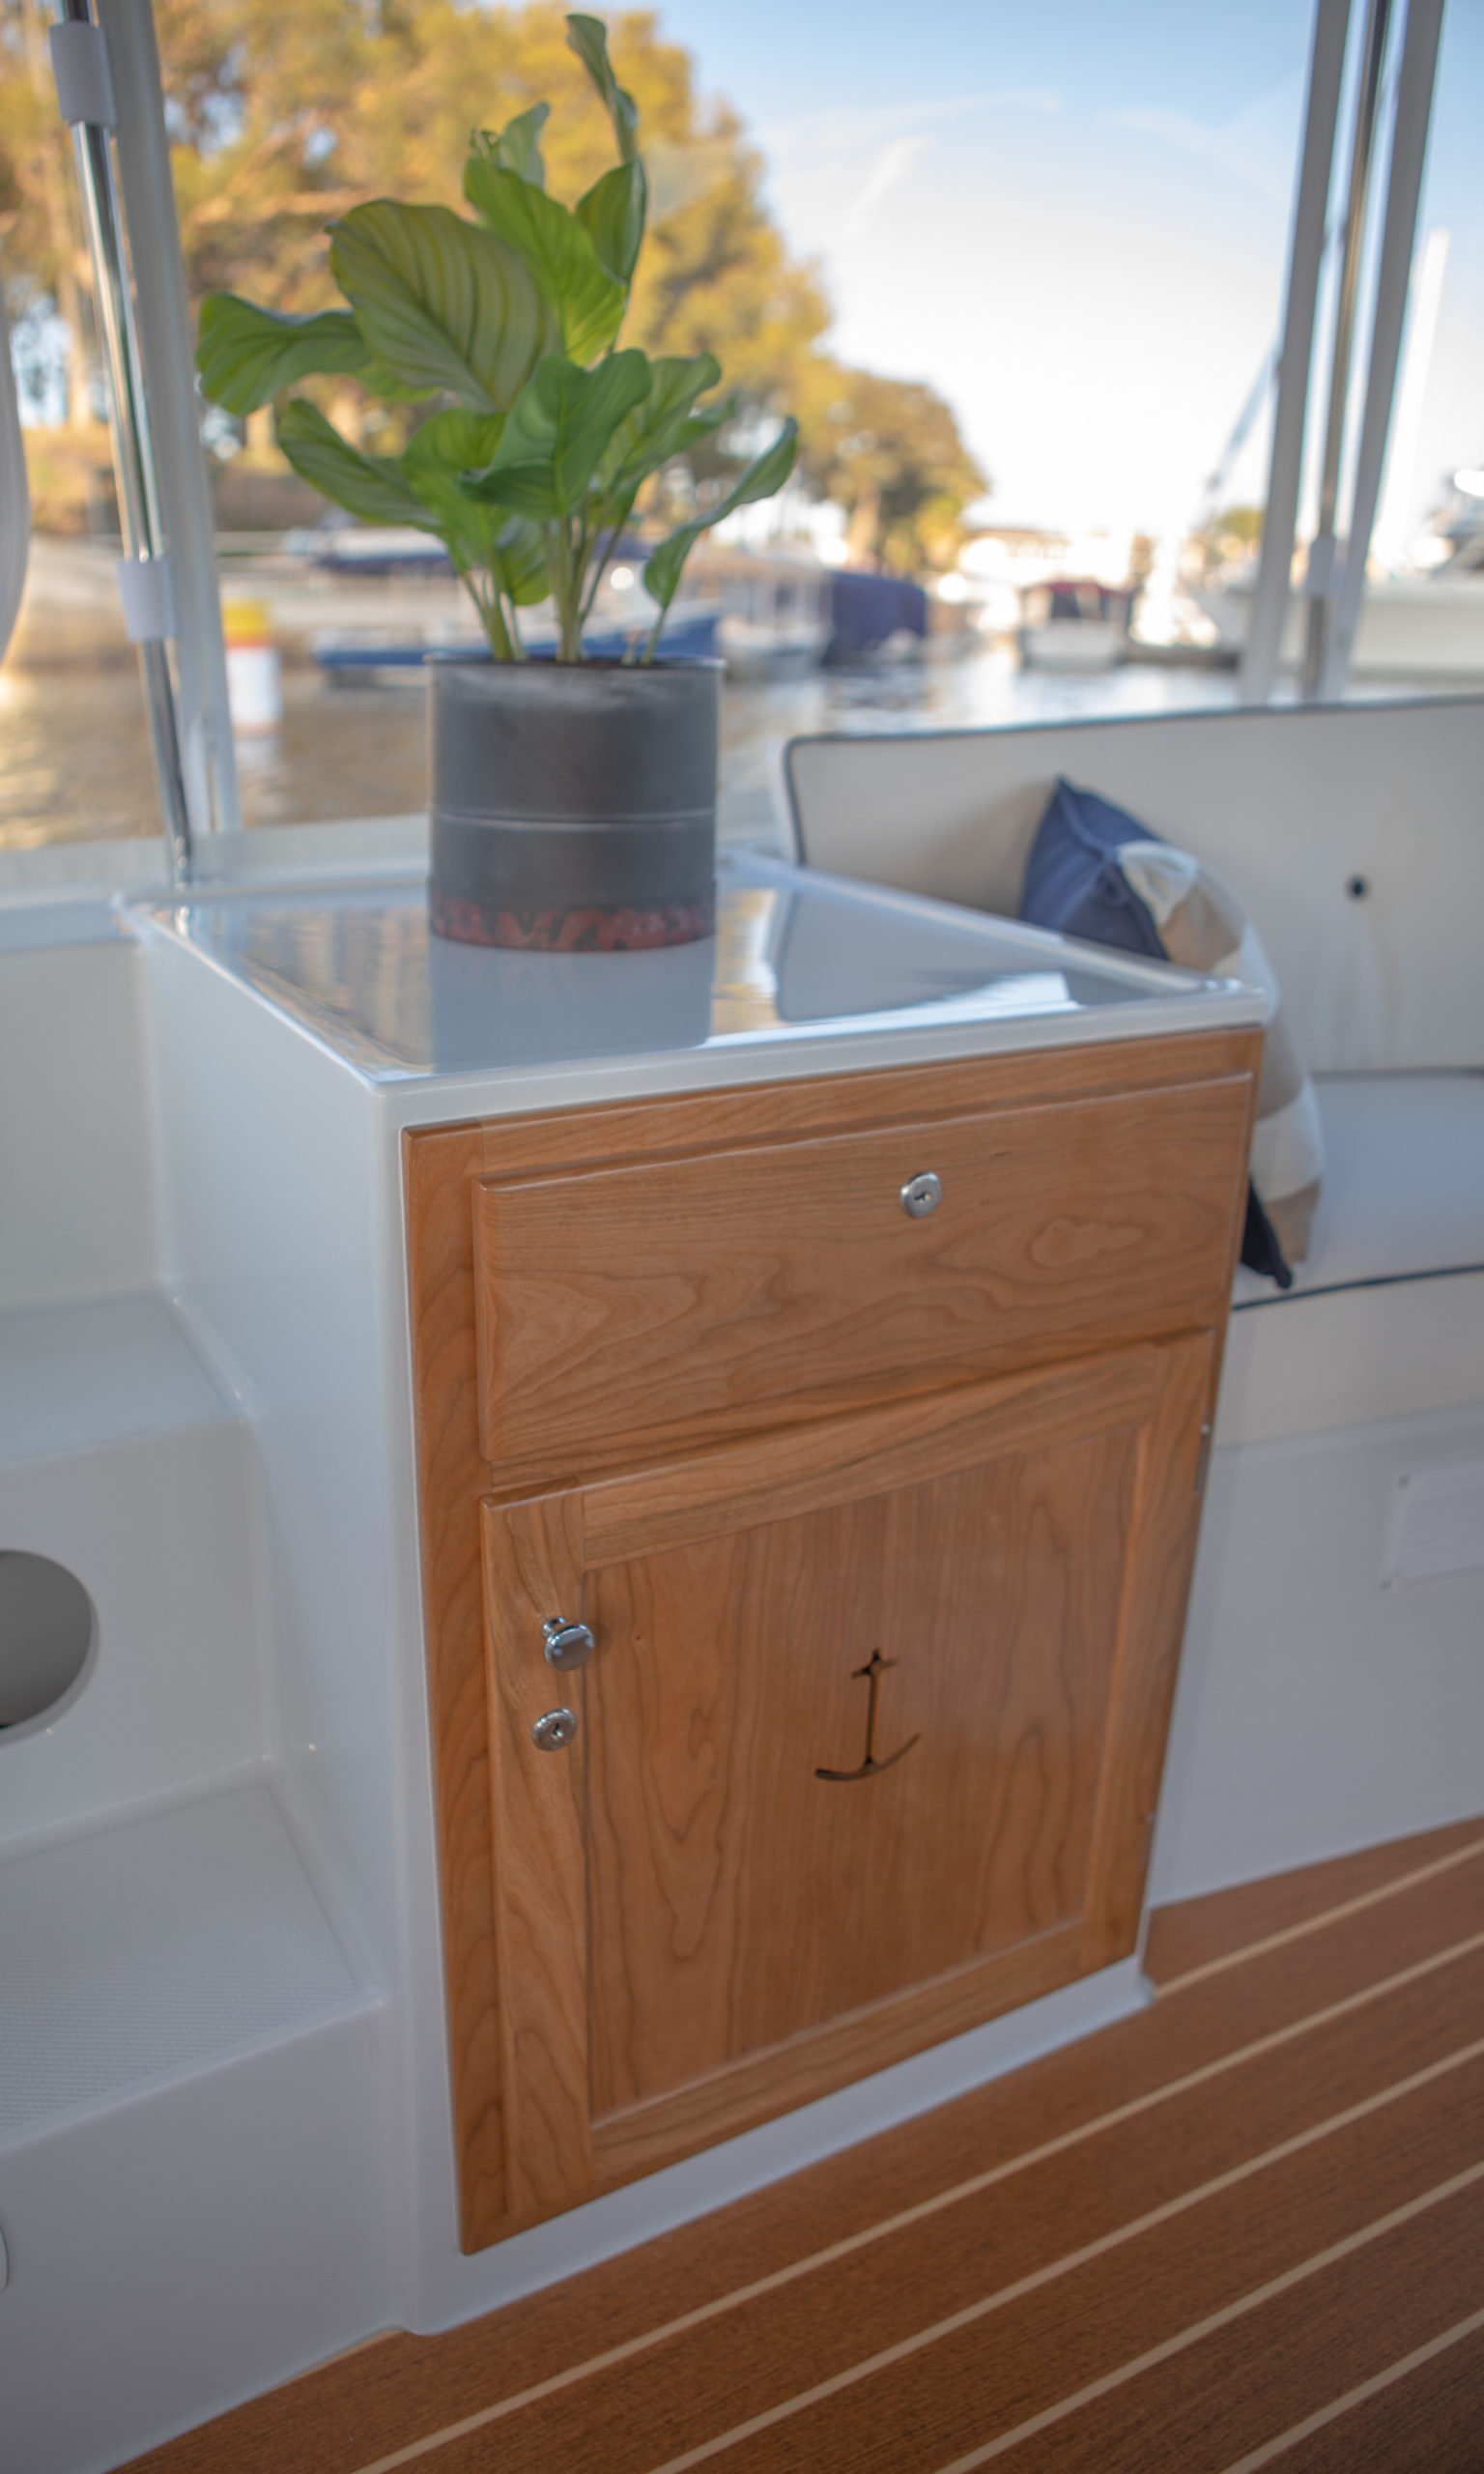 Duffy-Electric-Boats-18-Snug-Harbor-Interior-2020-4